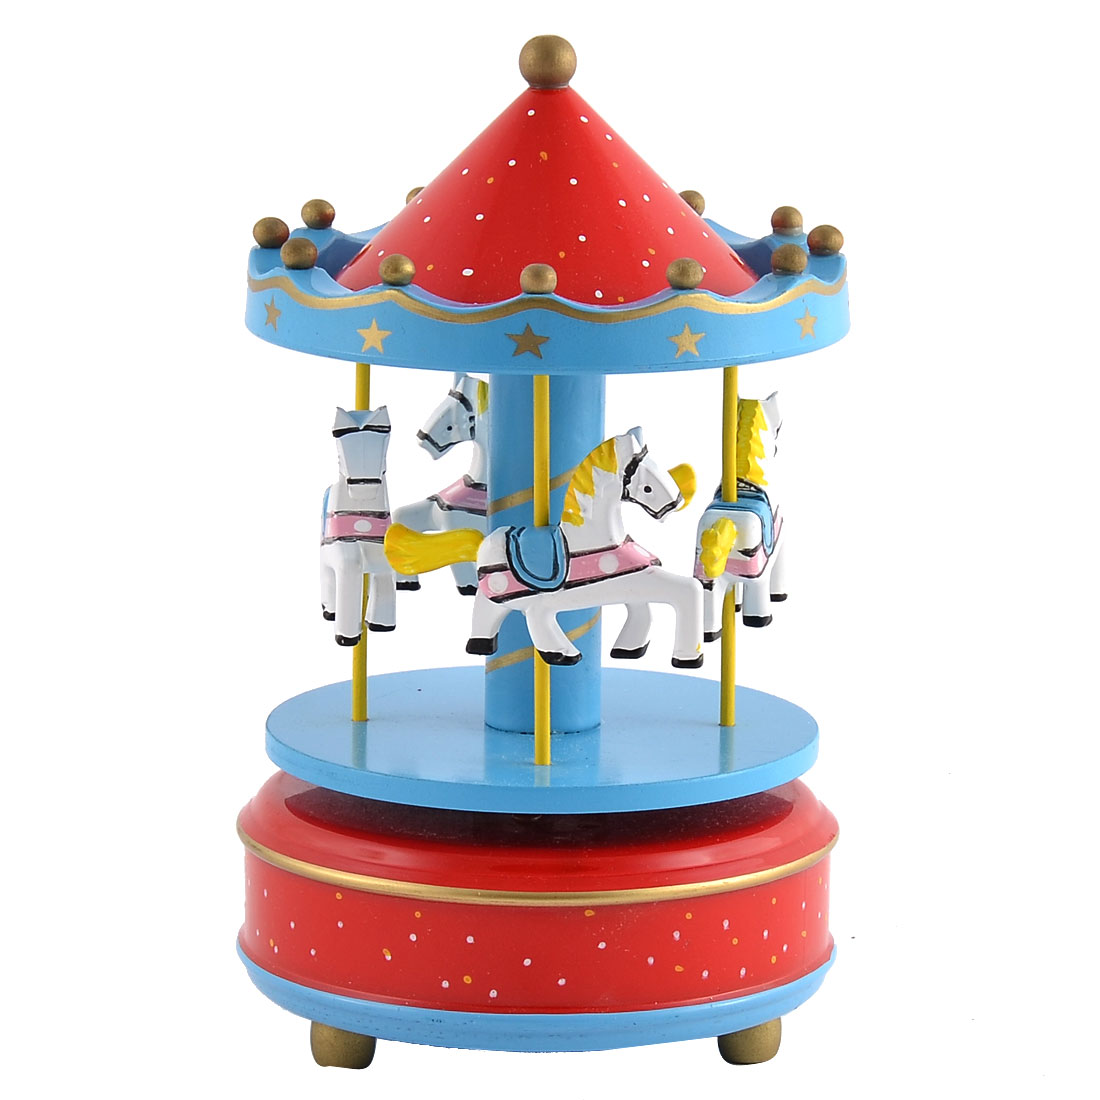 Plastic Shell Dots Pattern Merry-Go-Round Carousel Music Box Red Blue